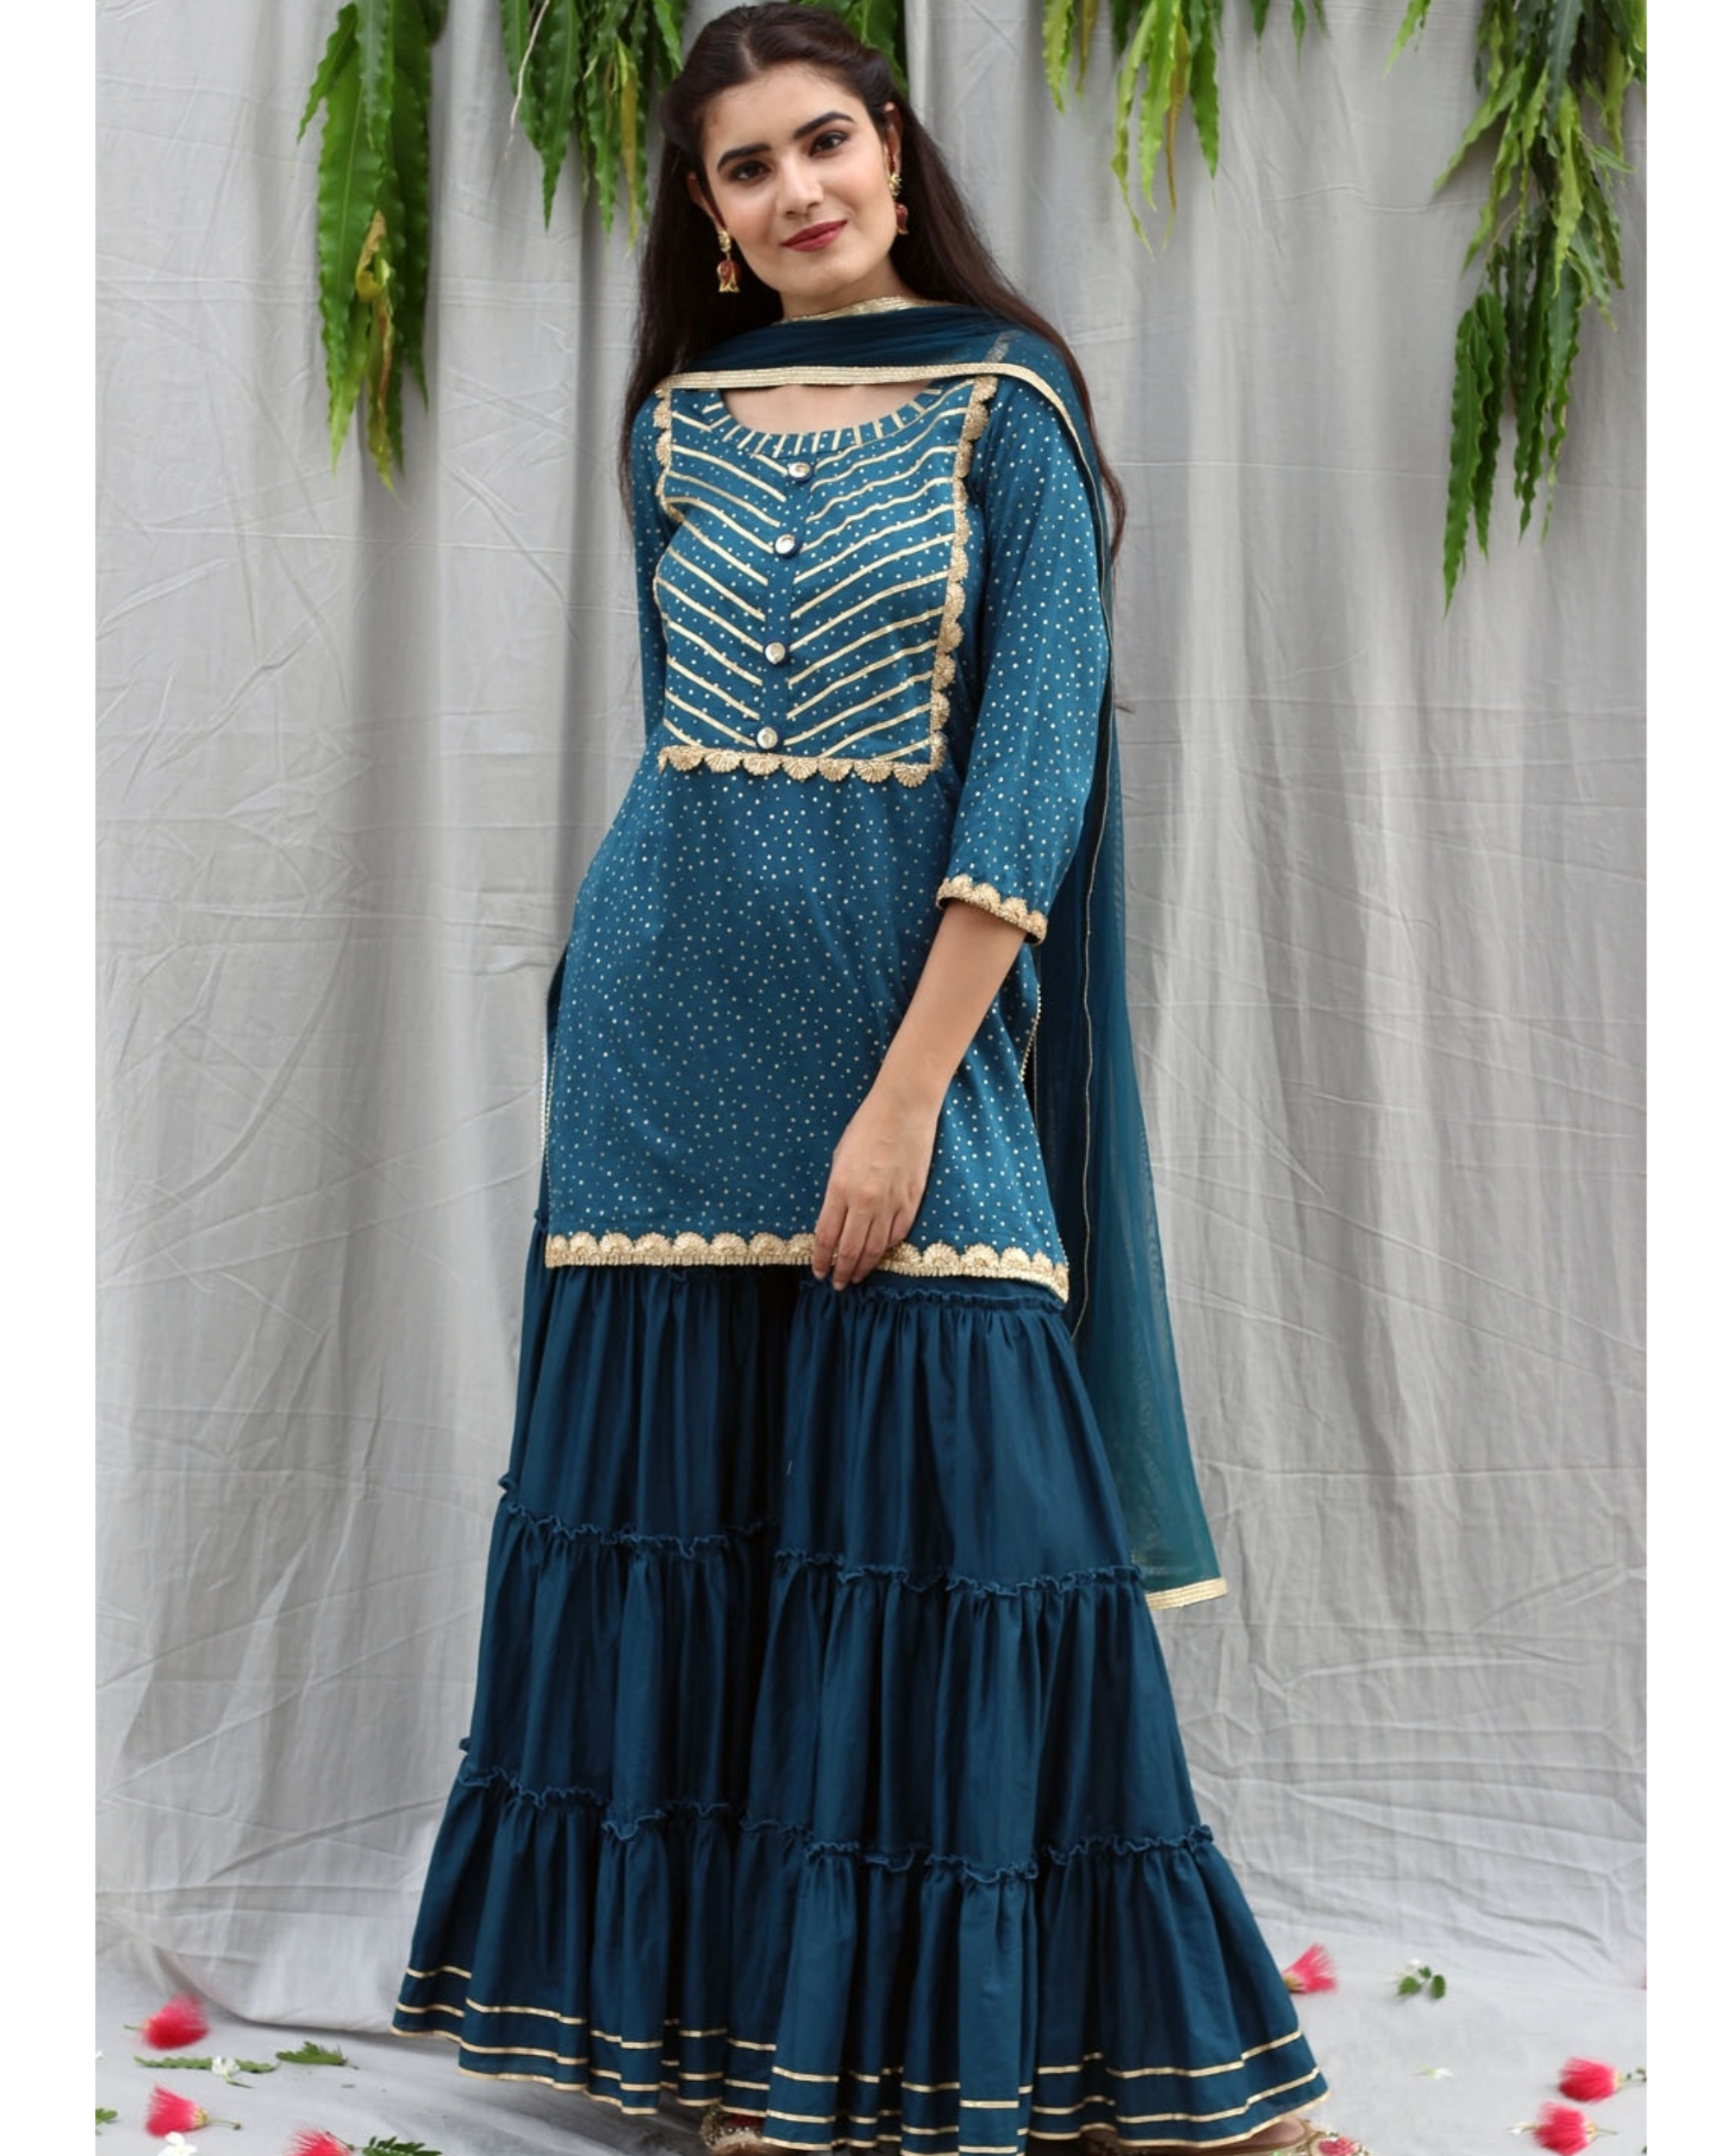 Teal blue sharara suit with dupatta - set of three